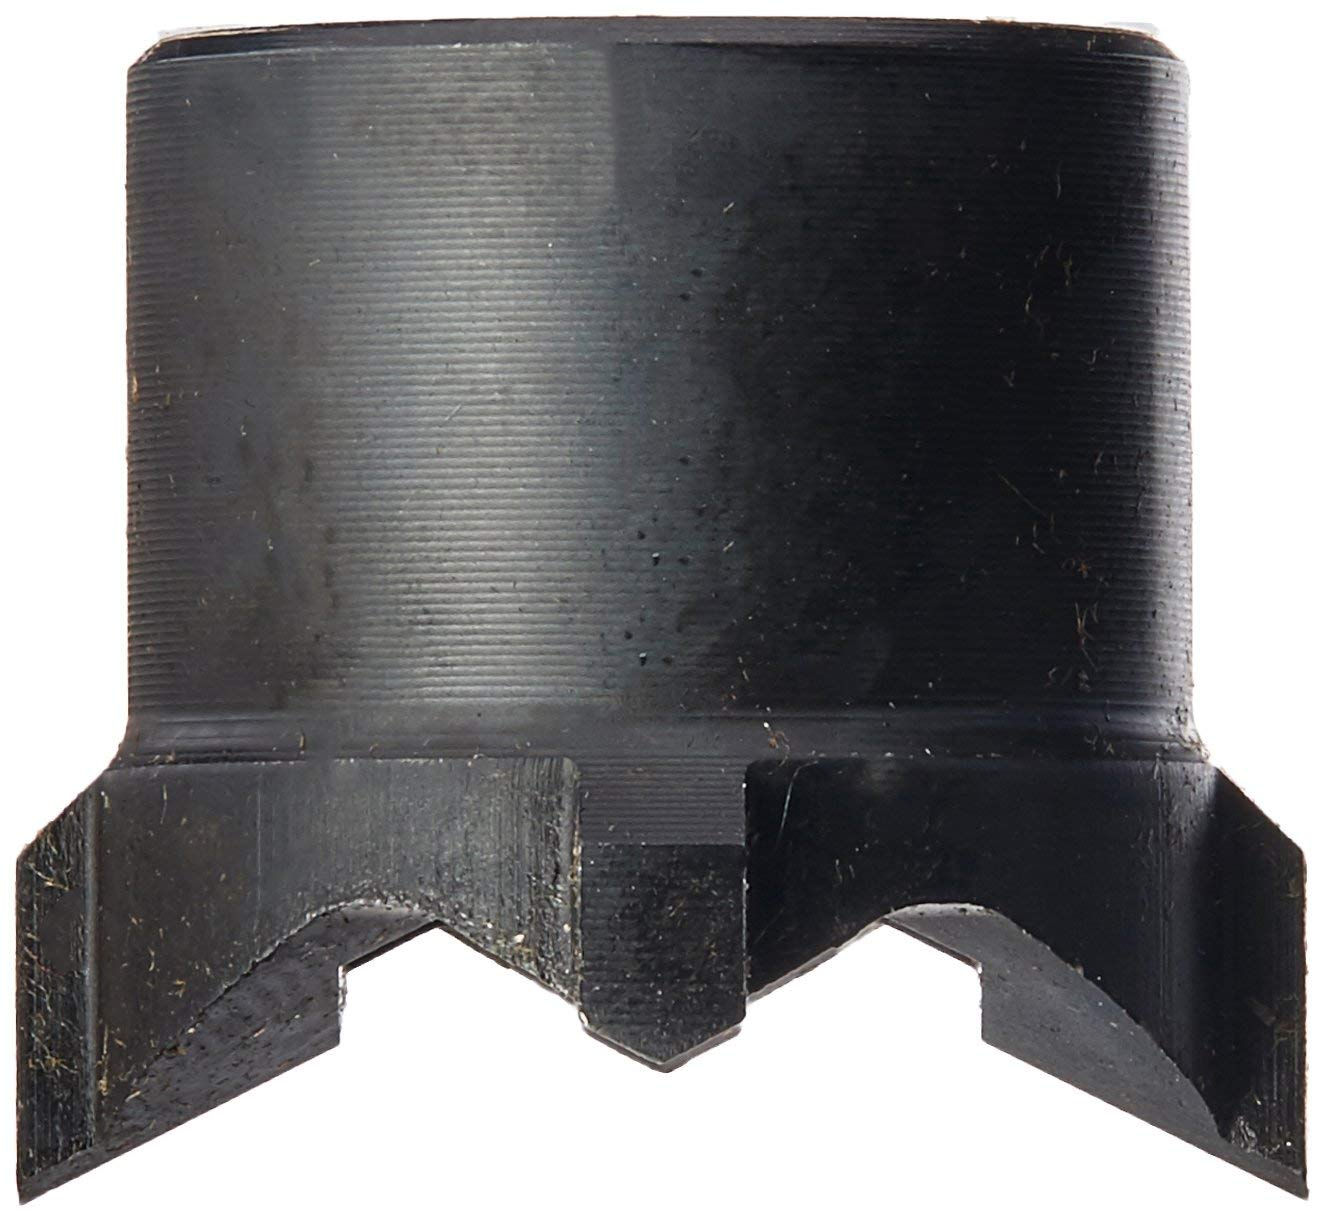 Greenlee 60239 Oil Tight Punch with Notches, 0.875-Inch